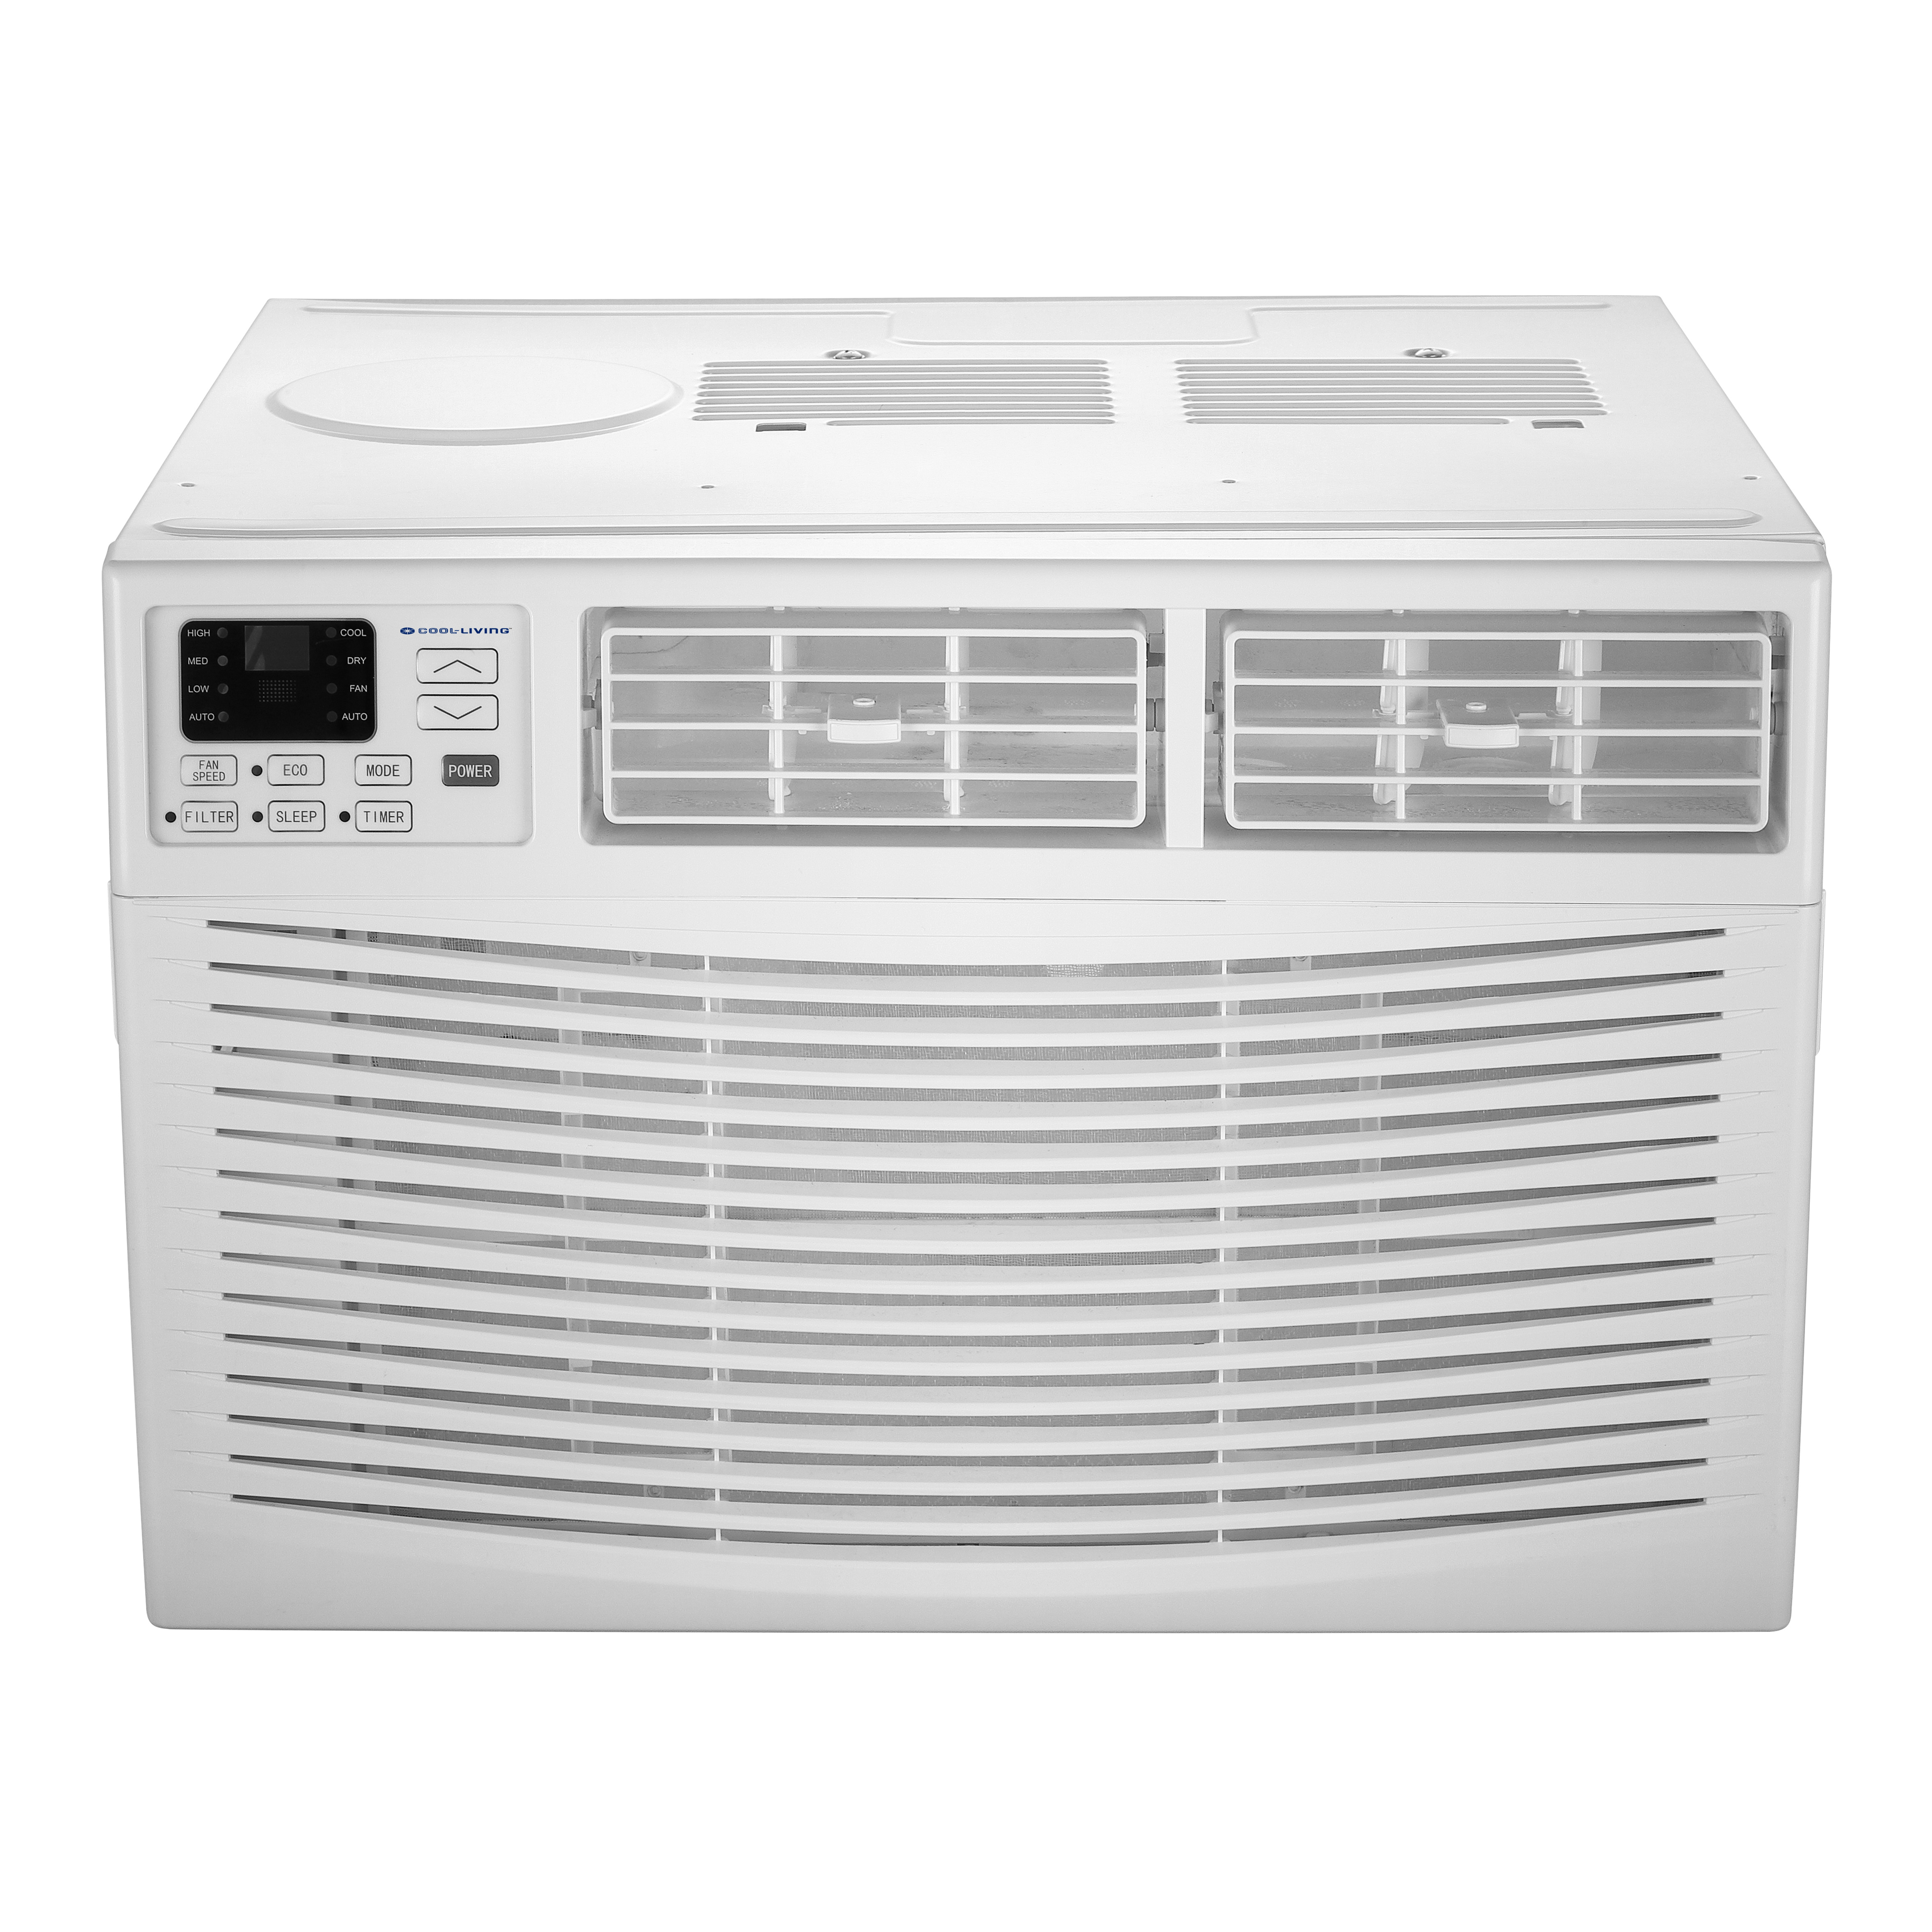 Cool-Living 18,000 BTU Window Air Conditioner with Remote 230-Volt, Energy Star